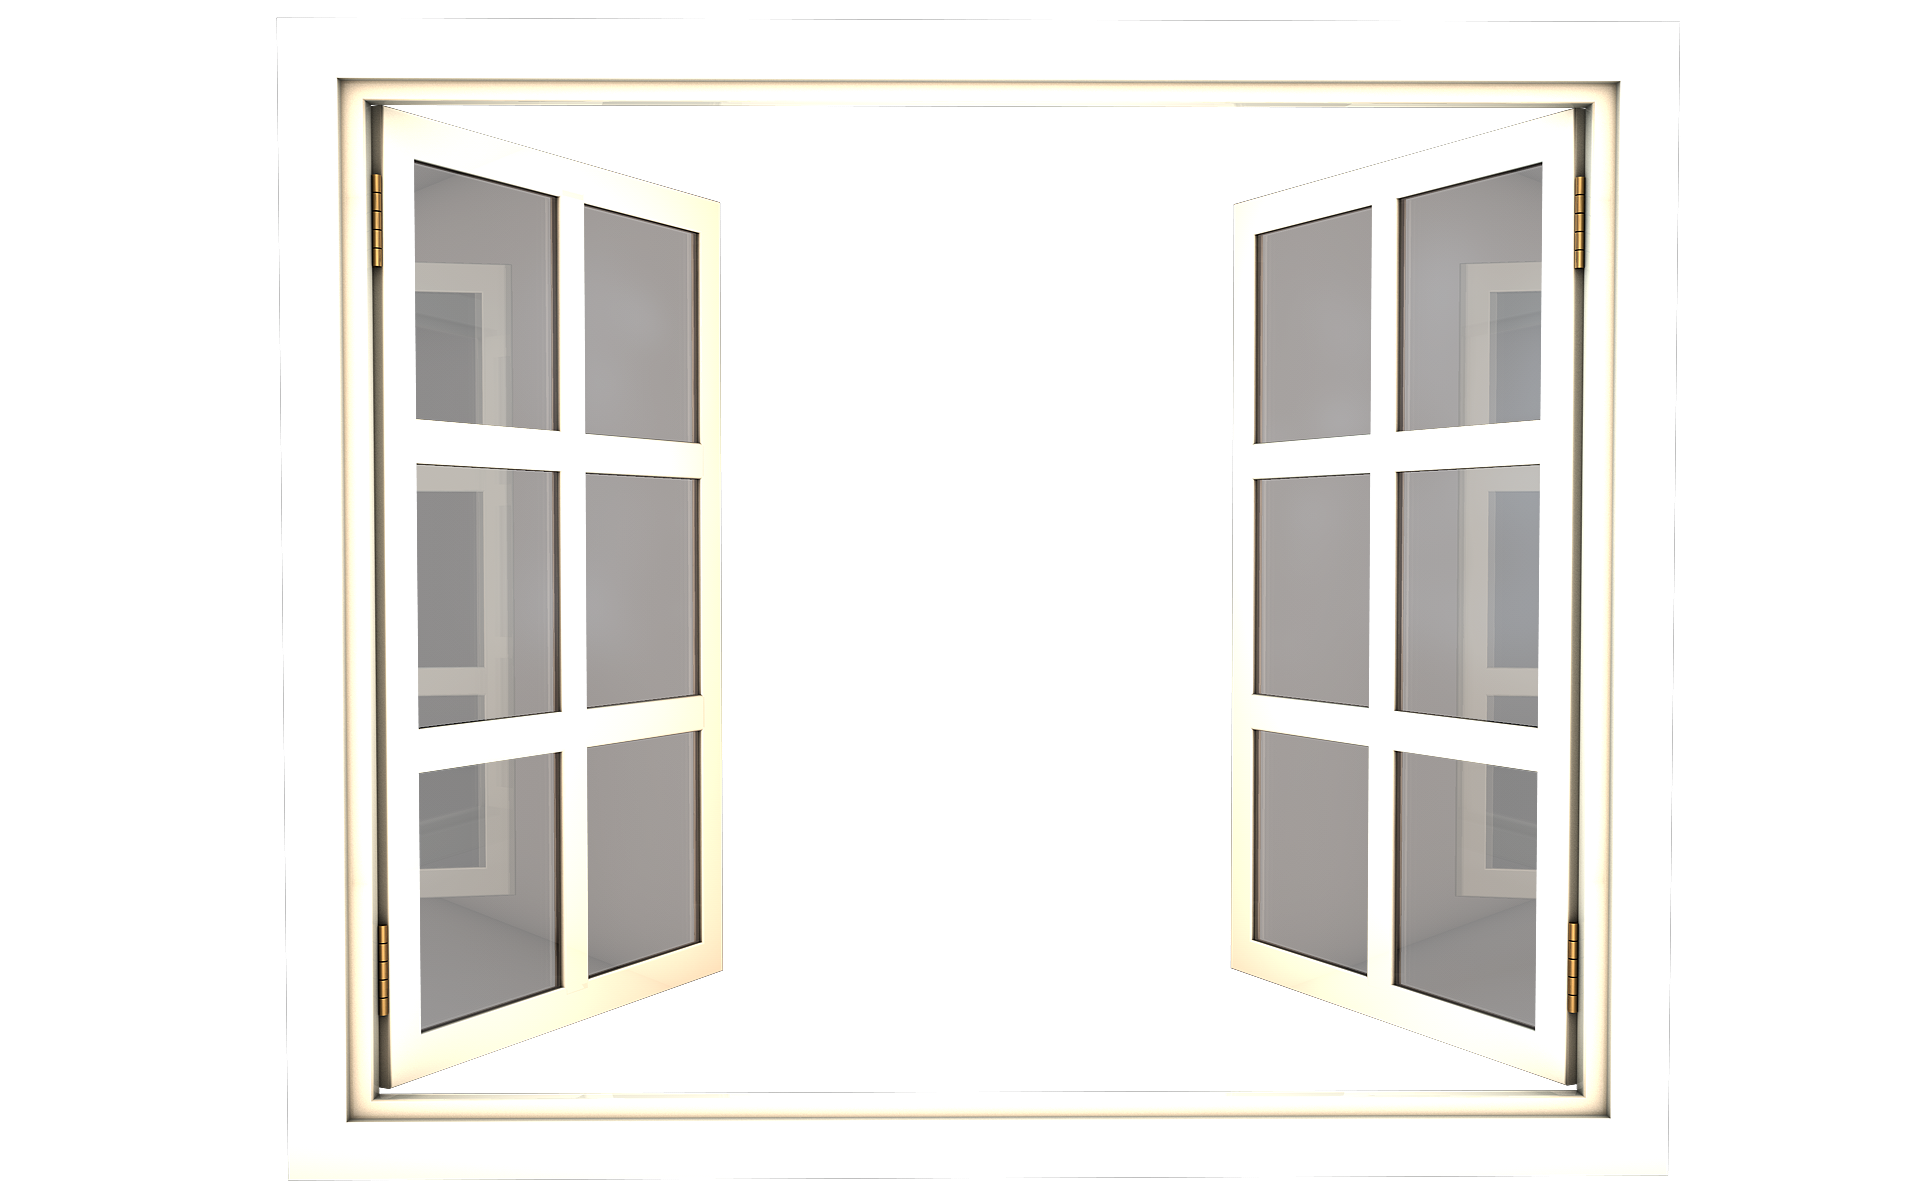 Outside clipart window open. Png image purepng free